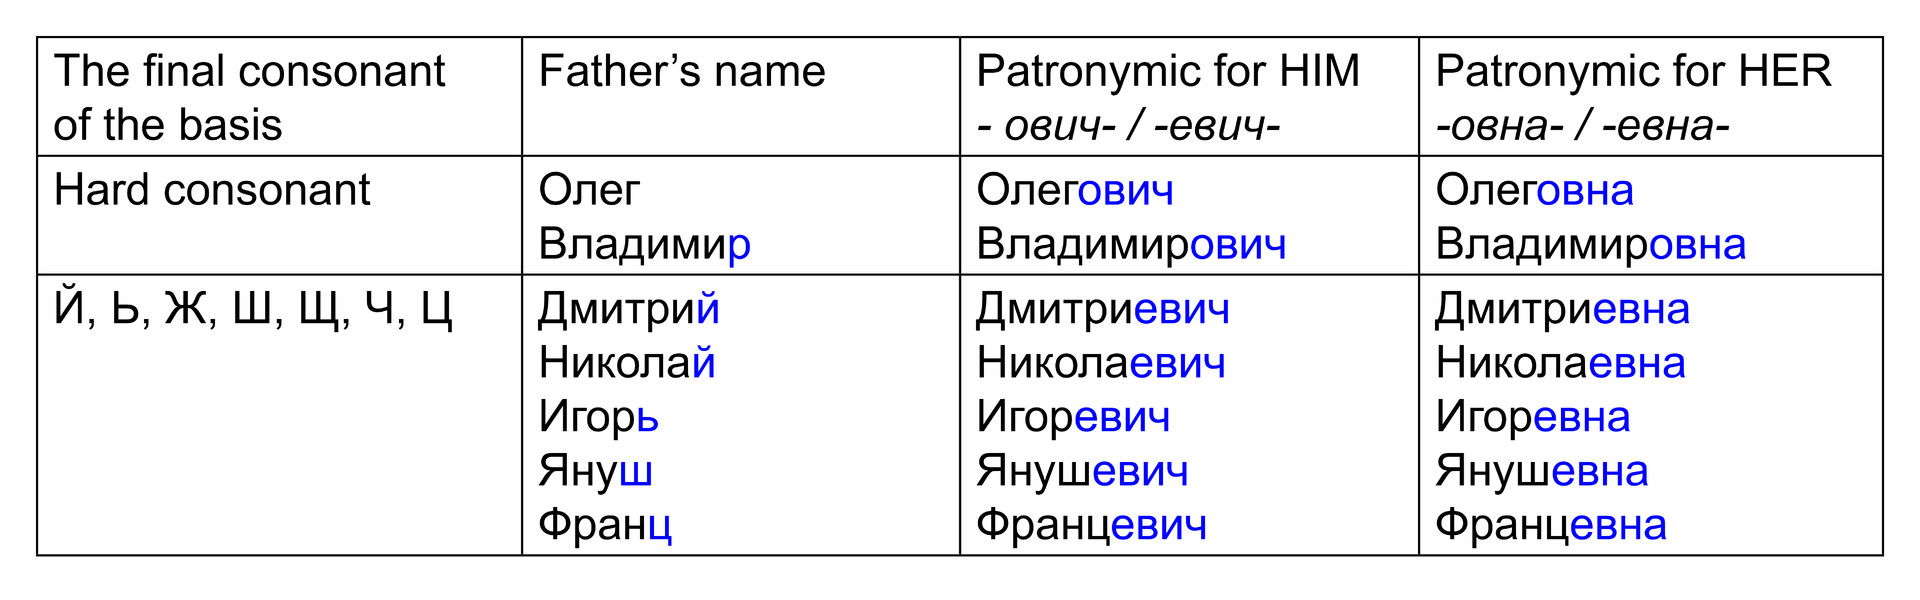 Table 1. Patronymic formation